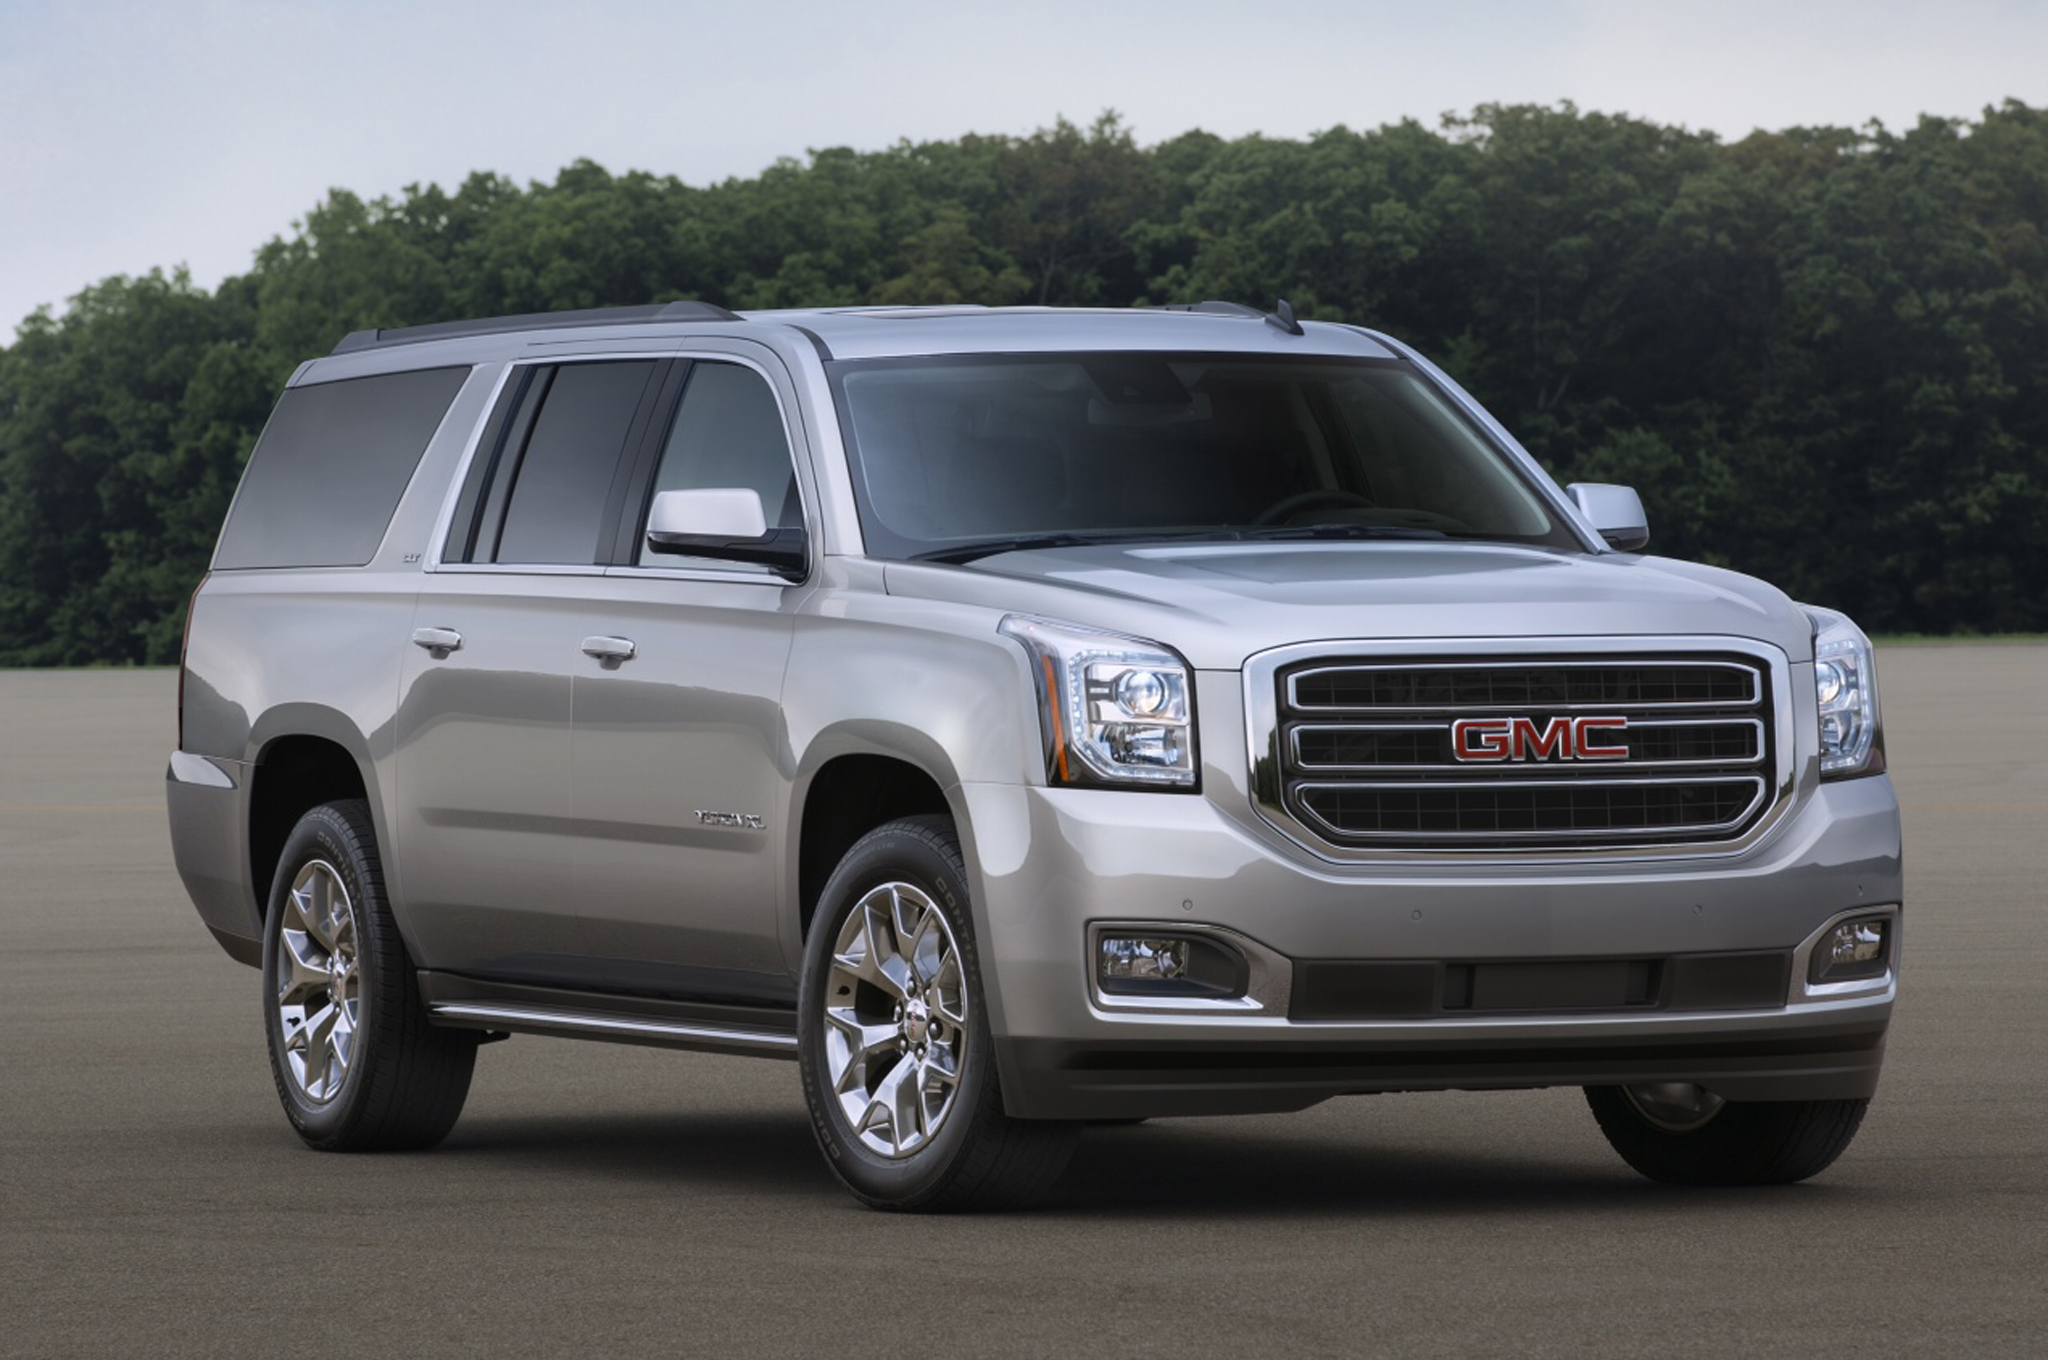 2015 chevy tahoe archives suv news and analysis suv. Black Bedroom Furniture Sets. Home Design Ideas